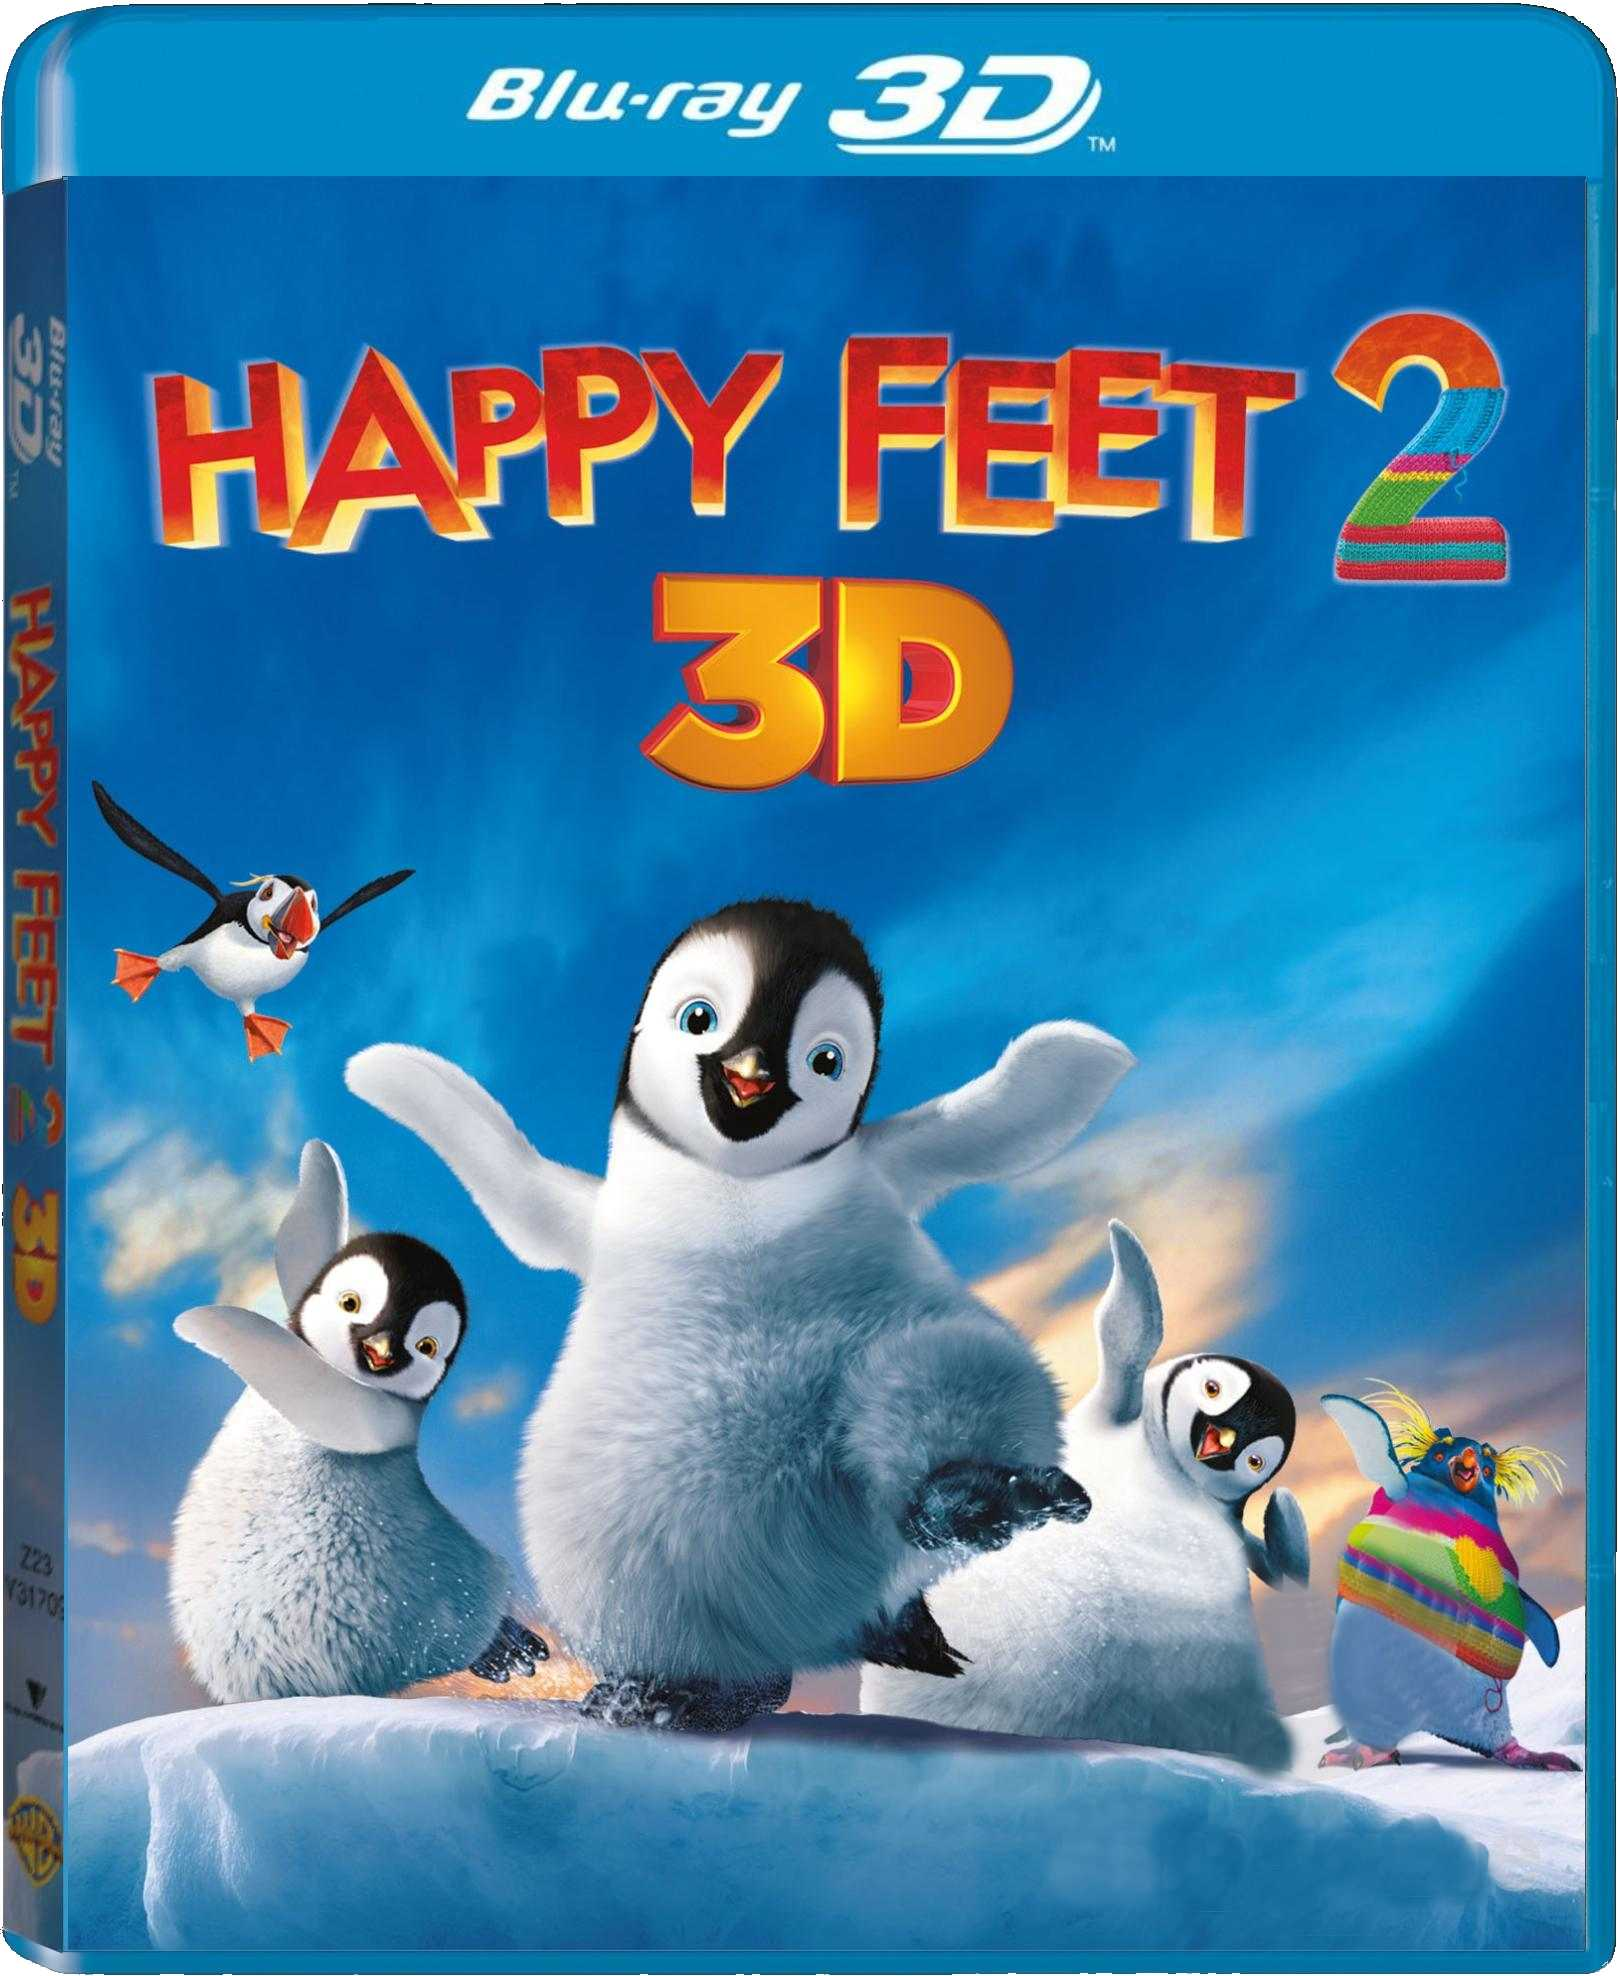 HAPPY FEET 2 - Blu-ray 3D + 2D